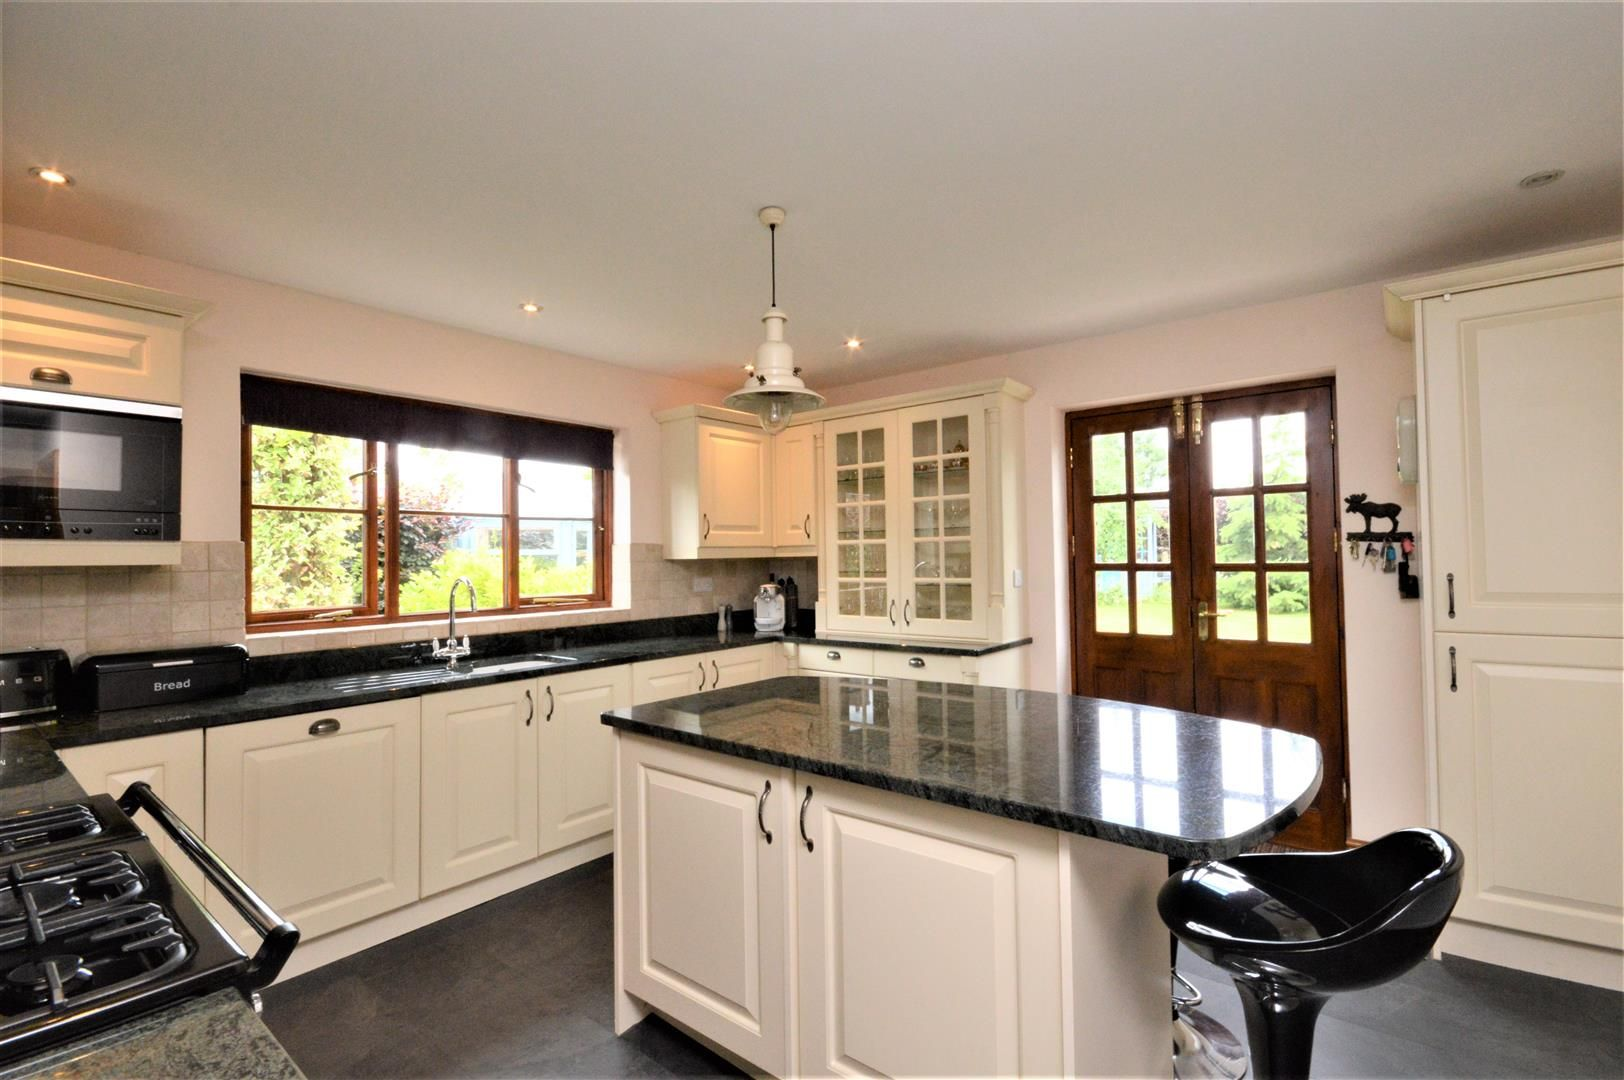 4 bed detached for sale in Eardisley  - Property Image 5